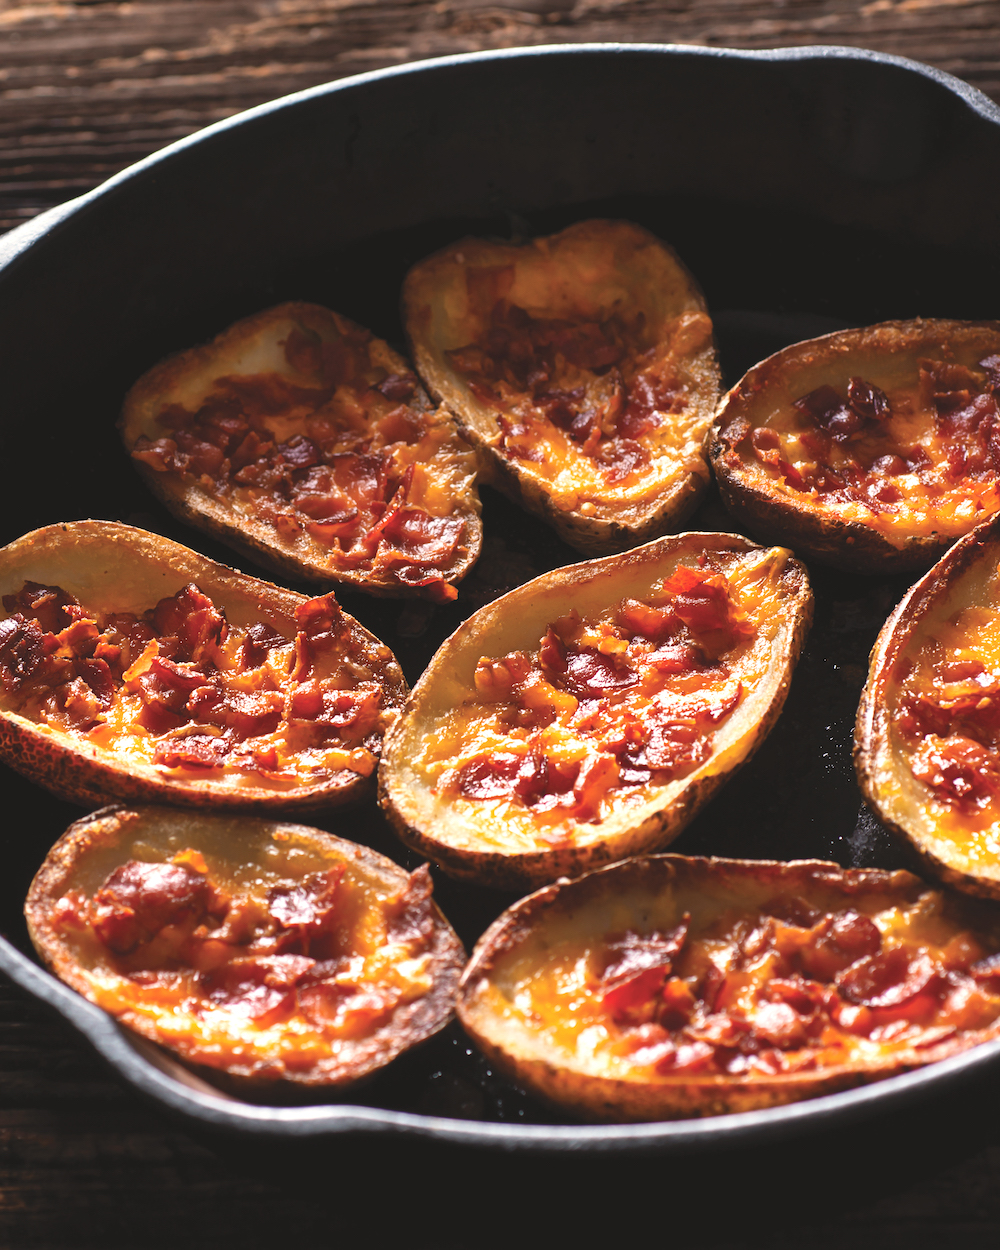 Baked Potato Skins with Pizza Toppings